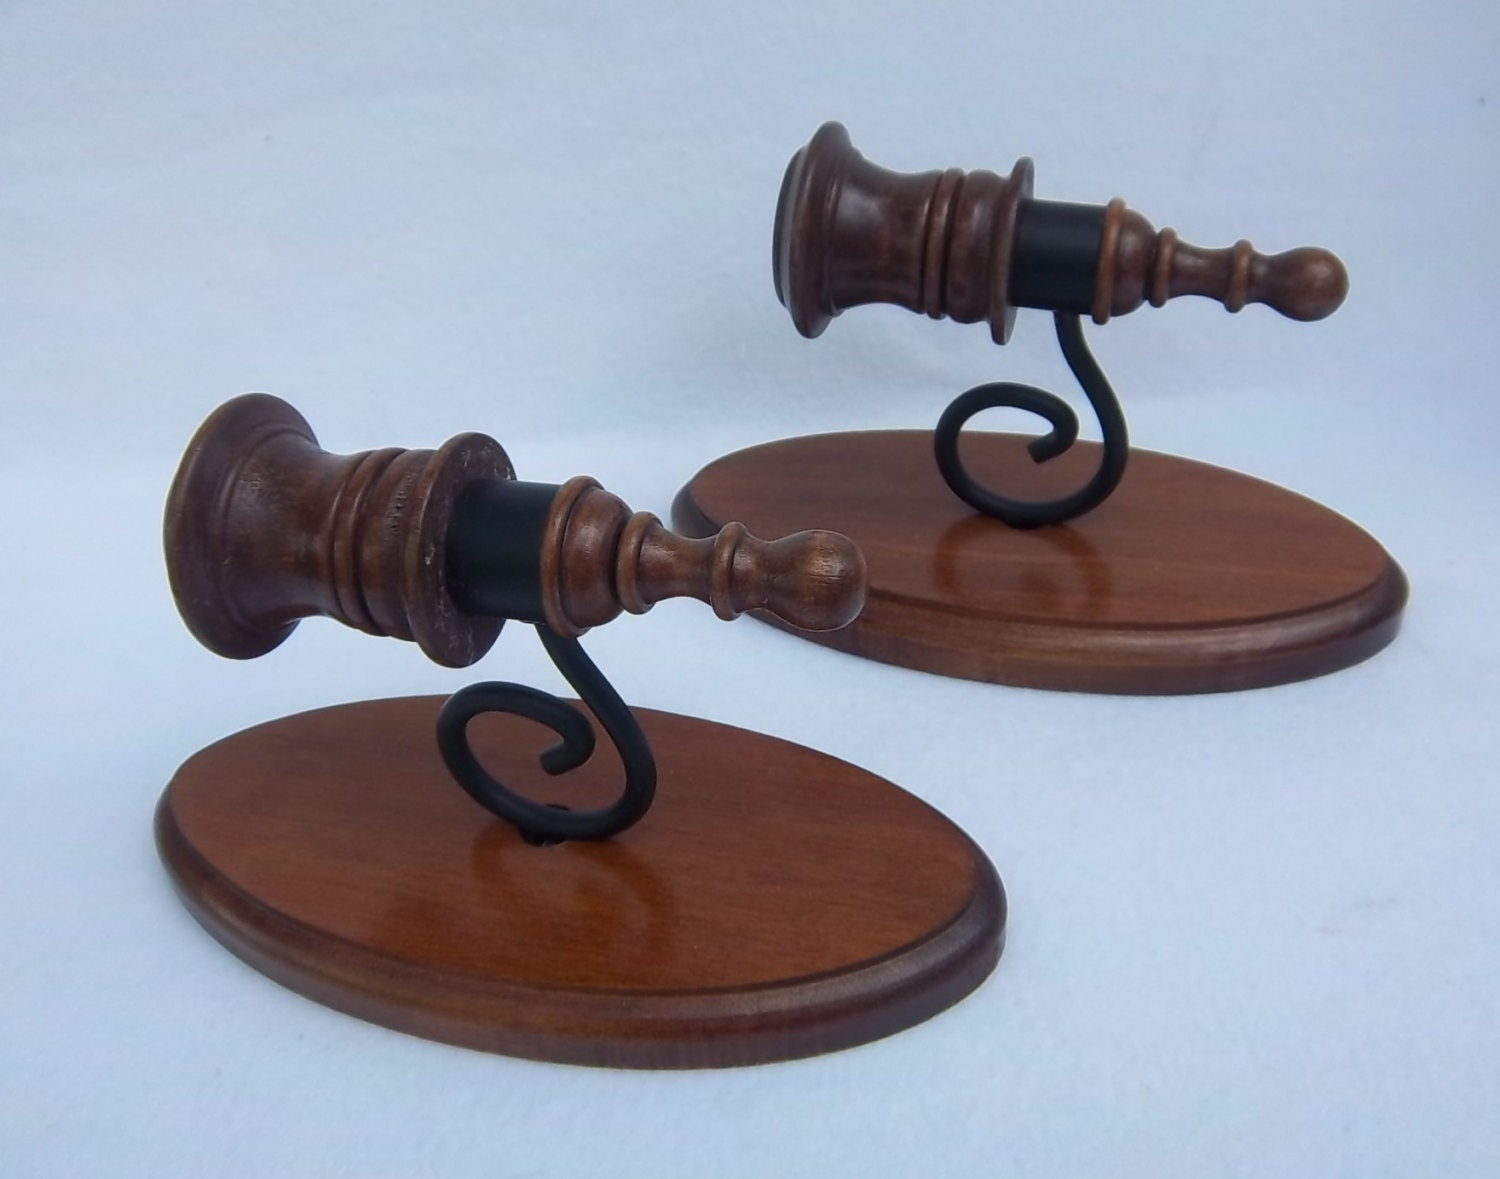 Wrought Iron Wall Decor Candle Holders : Wood and wrought iron wall sconce candle holders